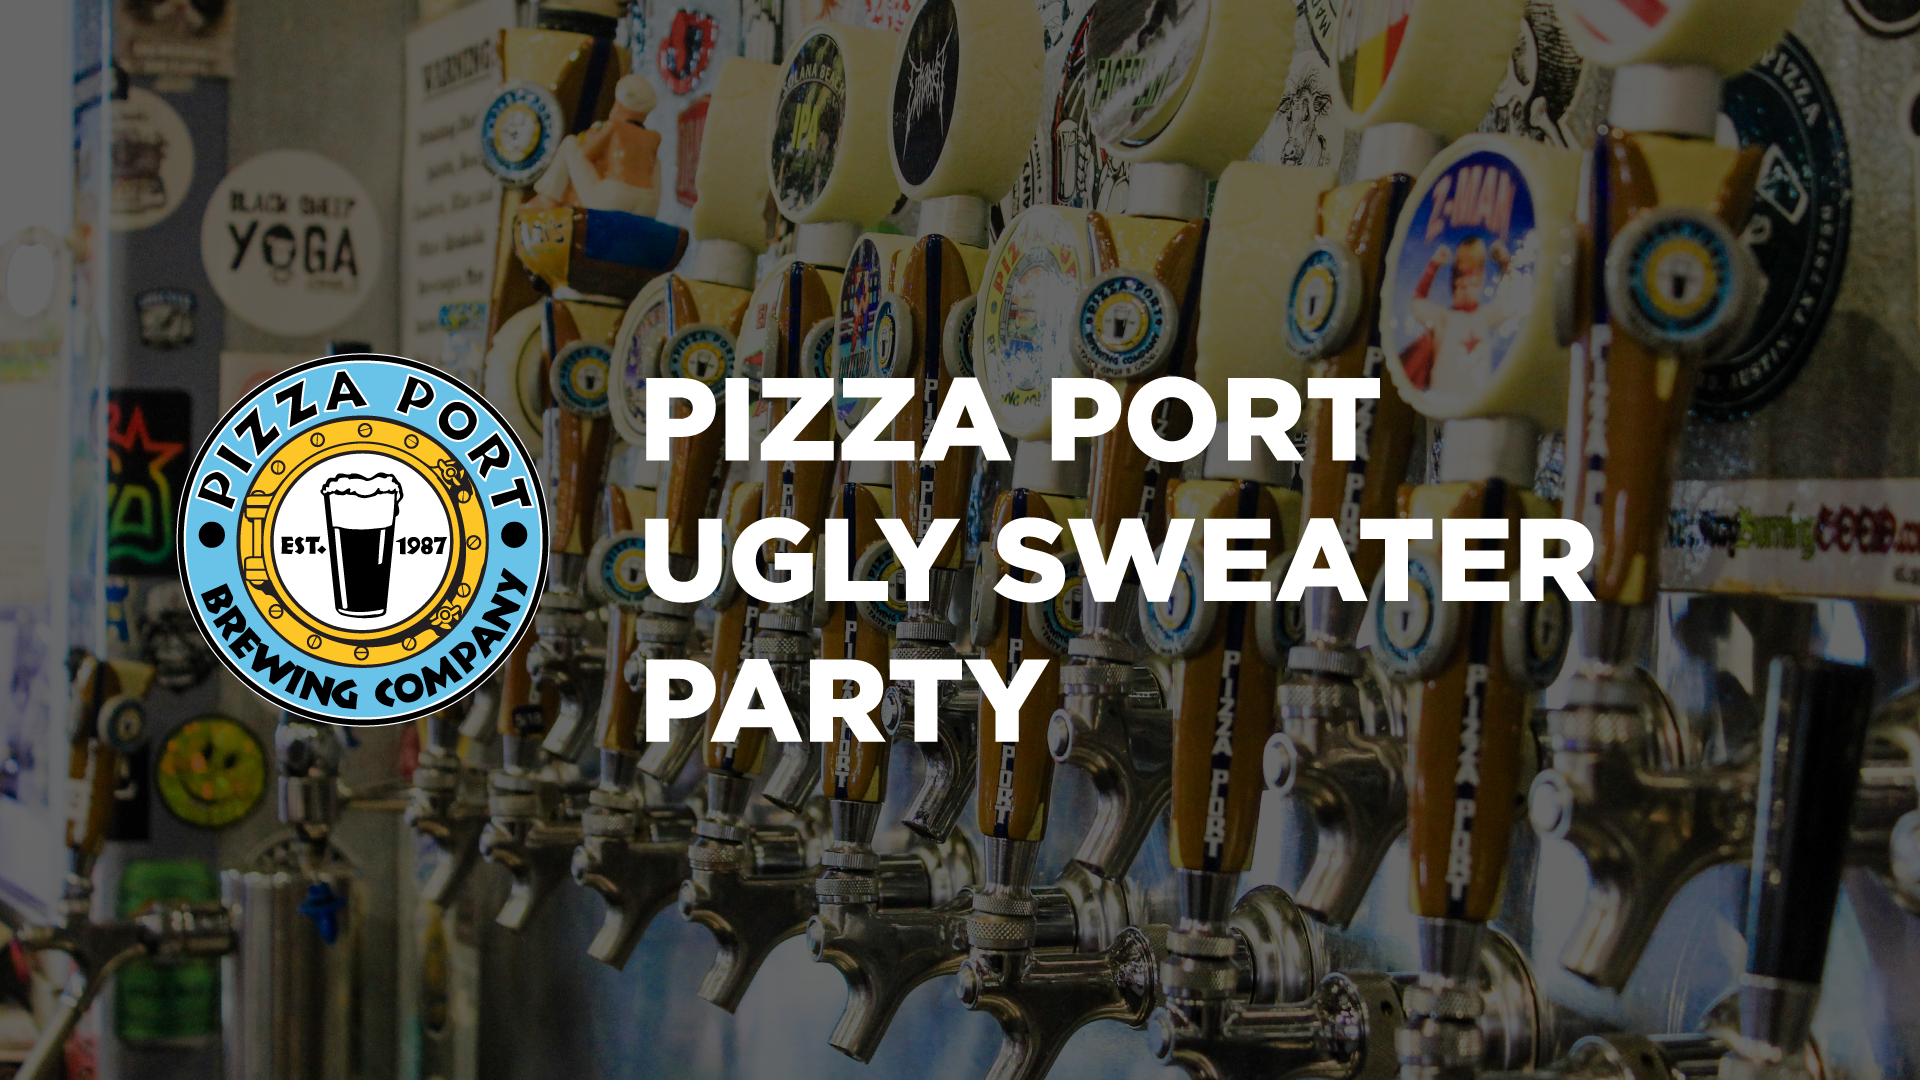 Pizza Port Ugly Sweater Party